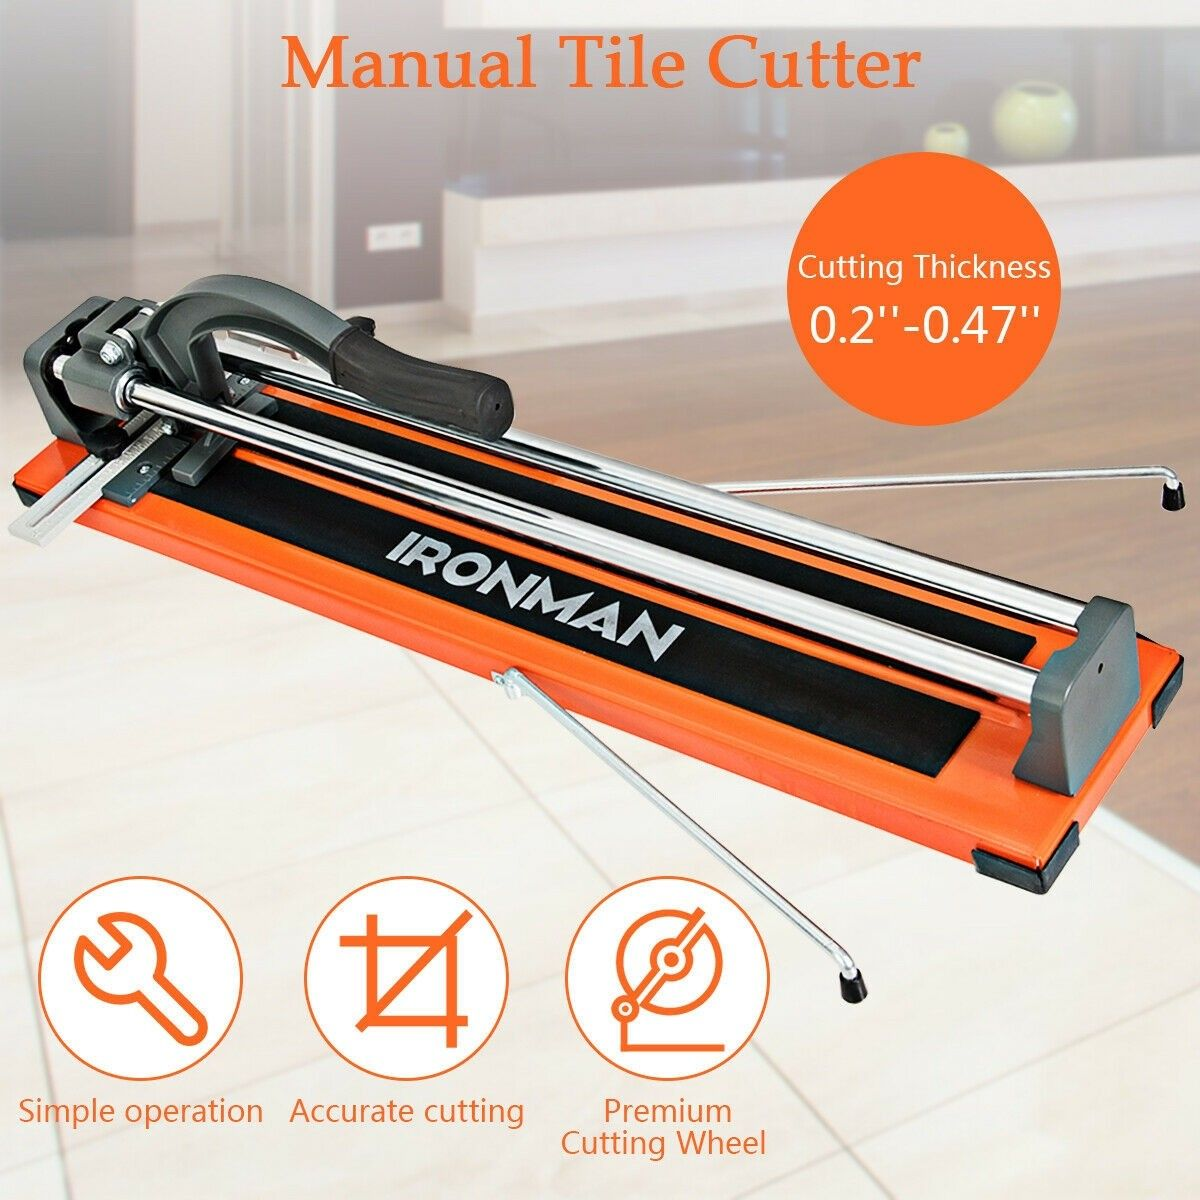 3 In 1 Heavy Duty Tile Cutter In 2020 Tile Cutter Cutter Diy Tile